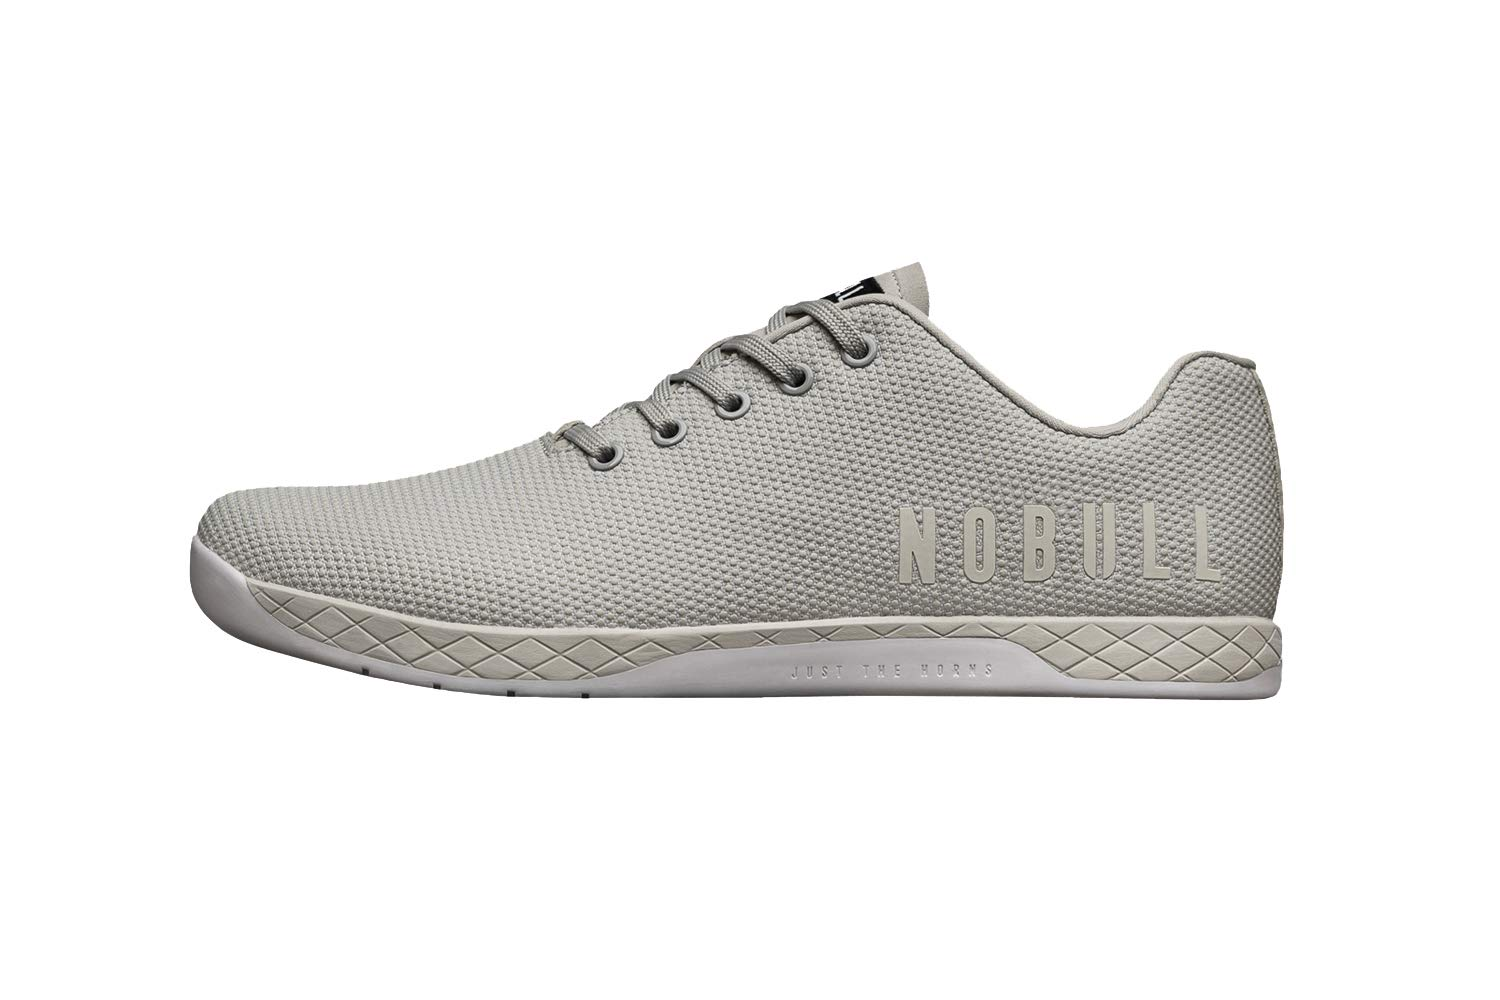 NOBULL Women's Training Shoes and Styles (8.5, Moon Rock) by NOBULL